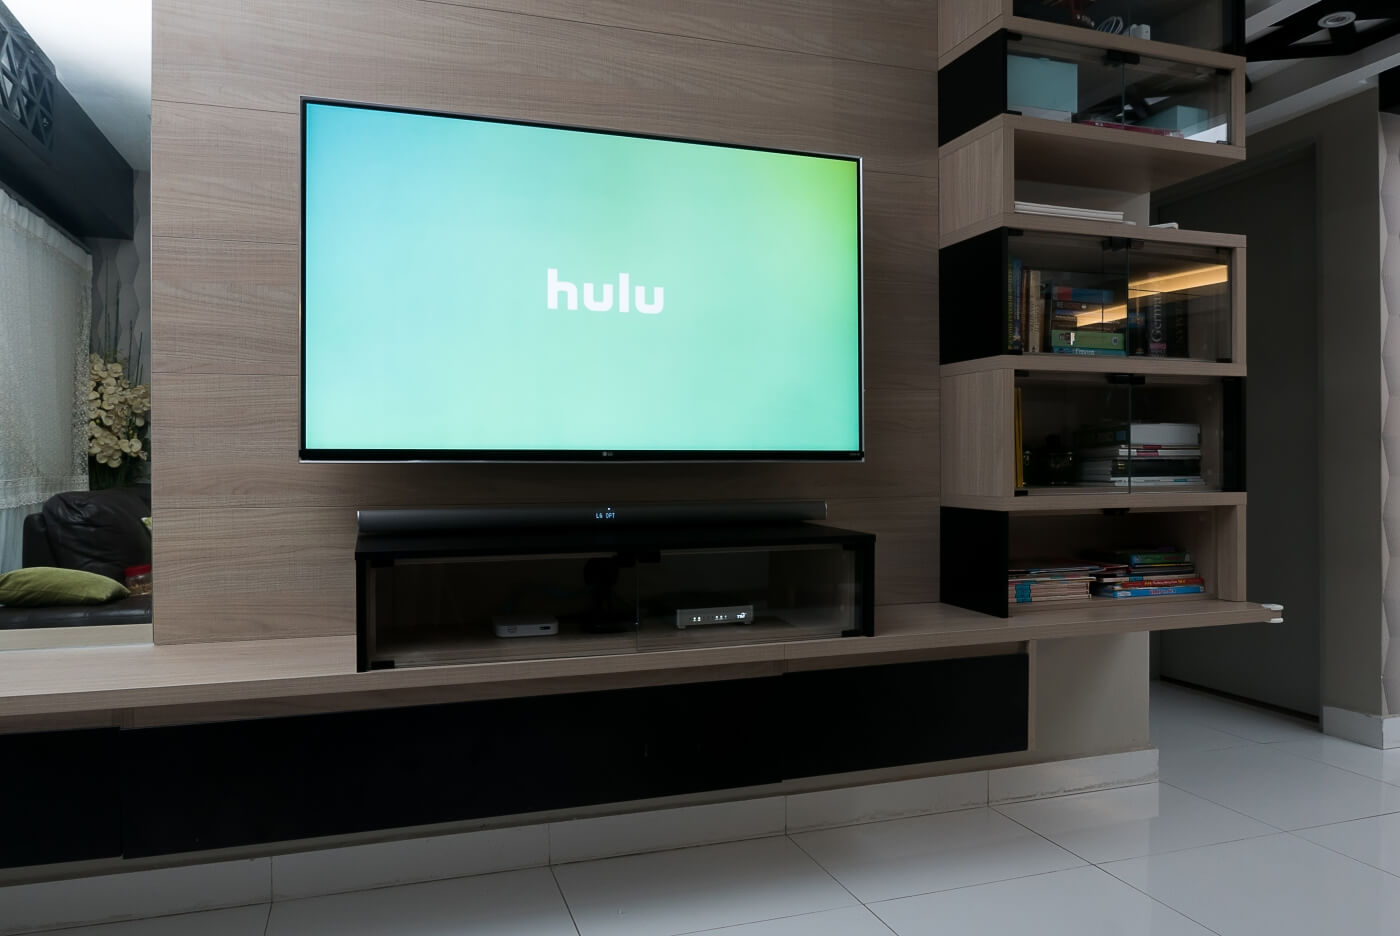 Hulu's live TV service is now available on the PlayStation 4